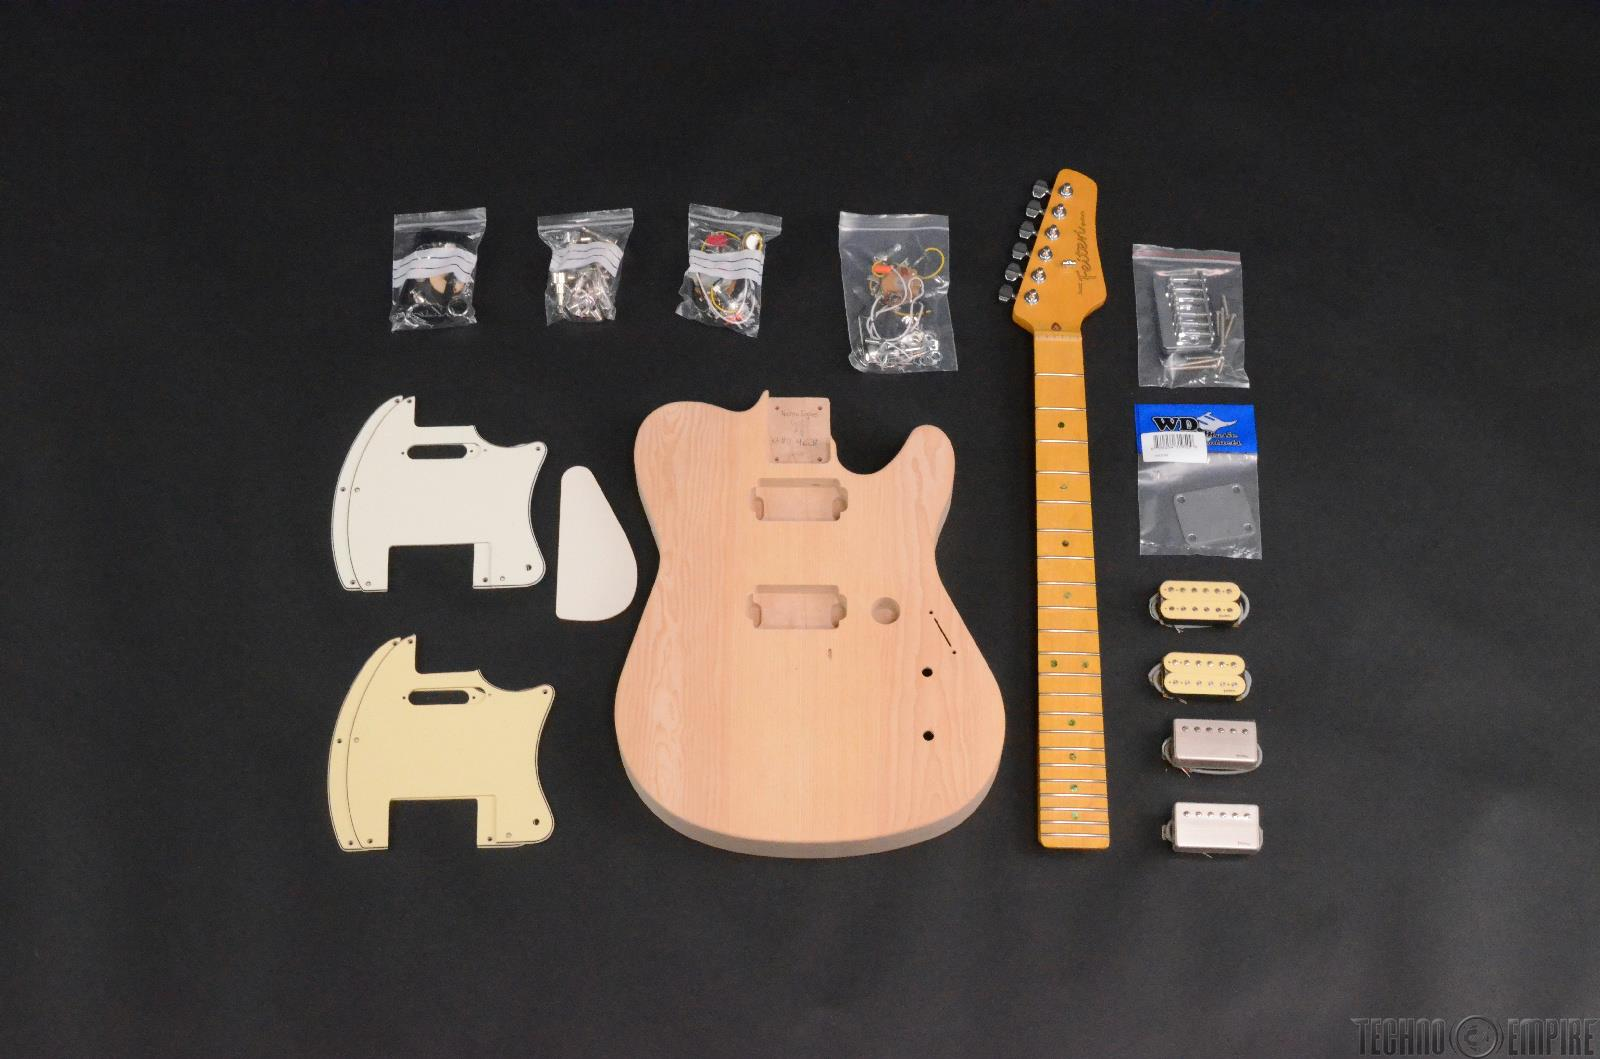 Buzz Feiten Gemini Elite Pro Build Your Own Electric Guitar Kit #28447